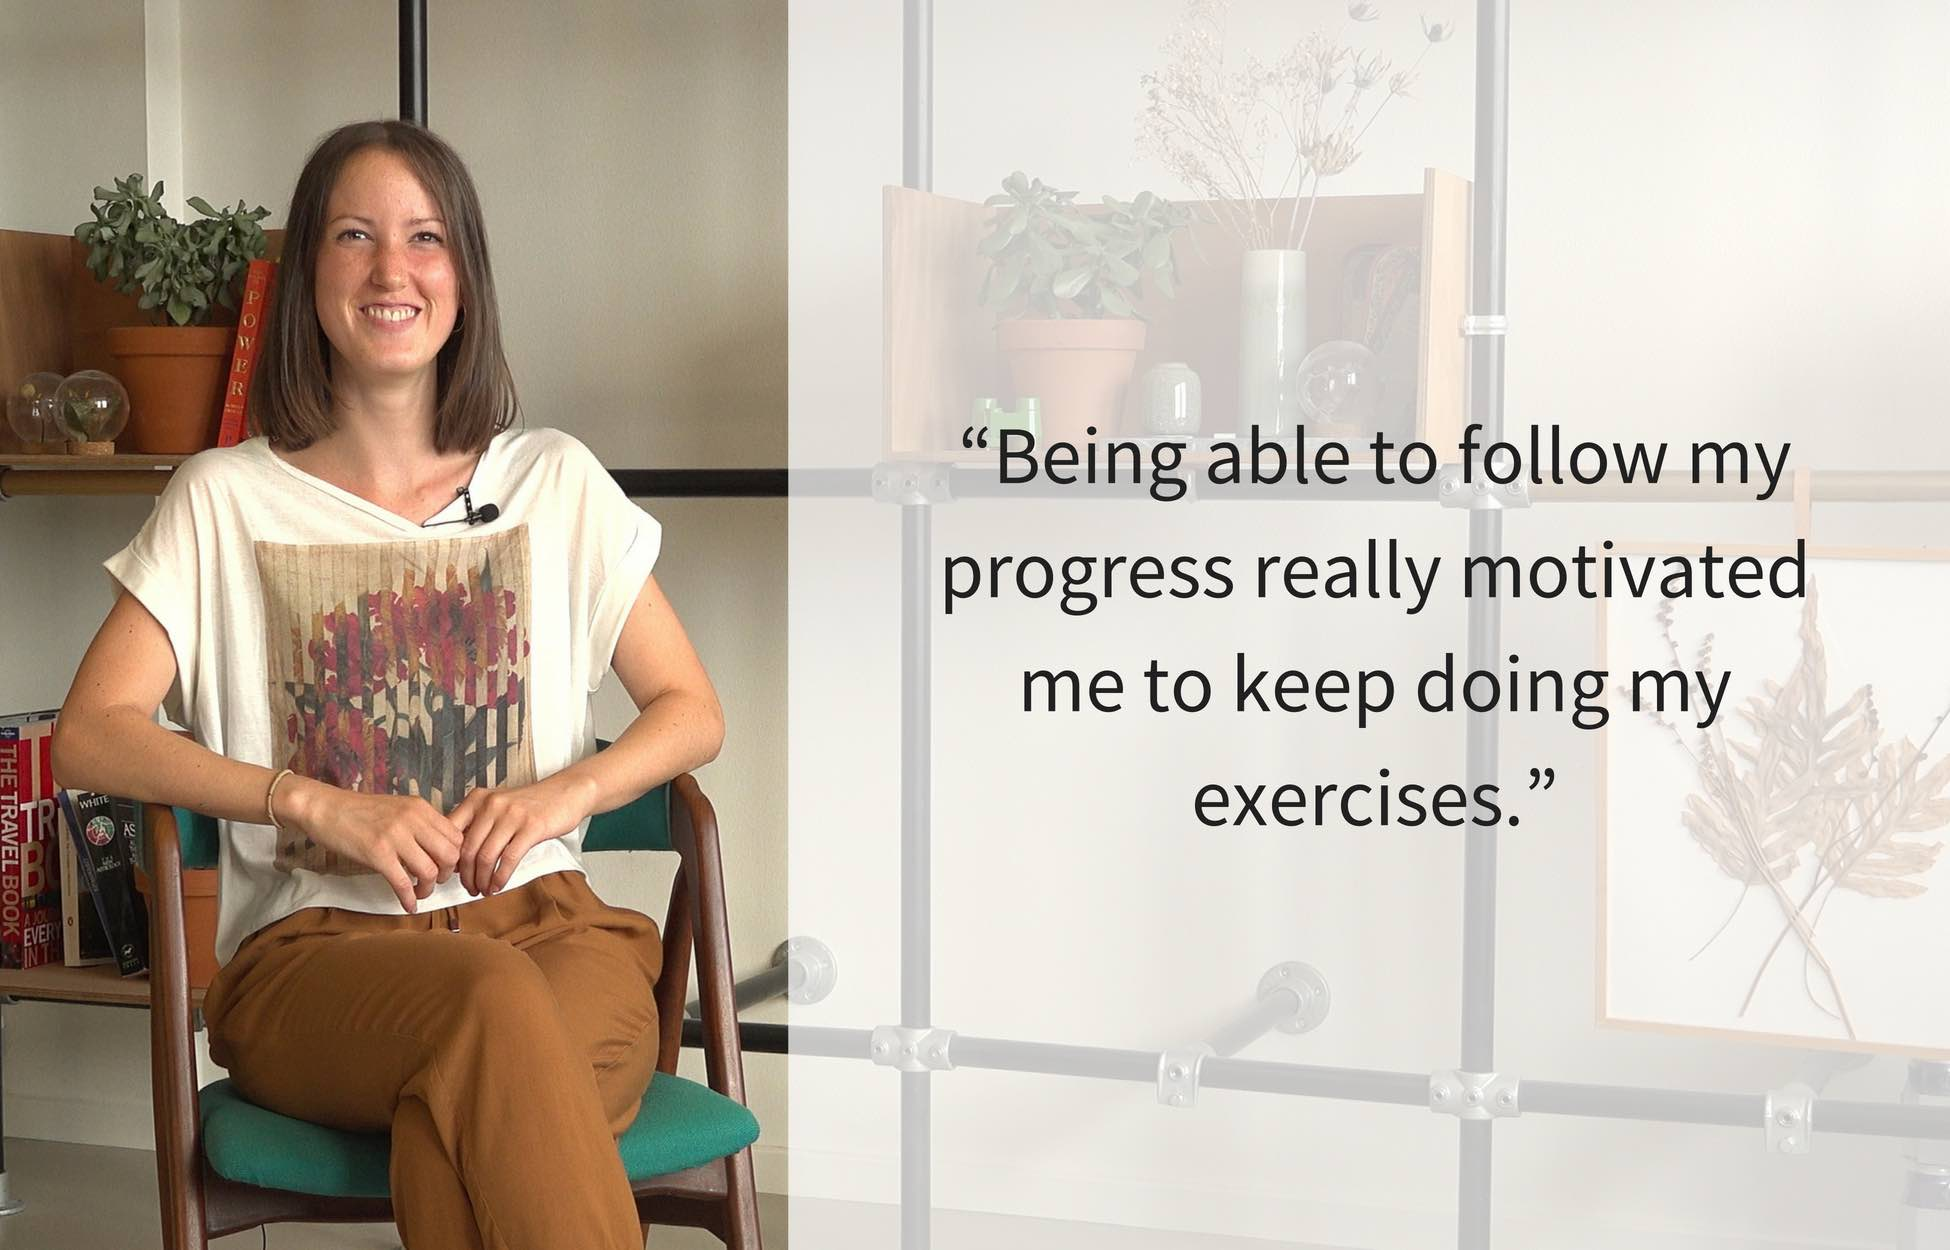 Photo of Reach user Veronica with her motivational quote